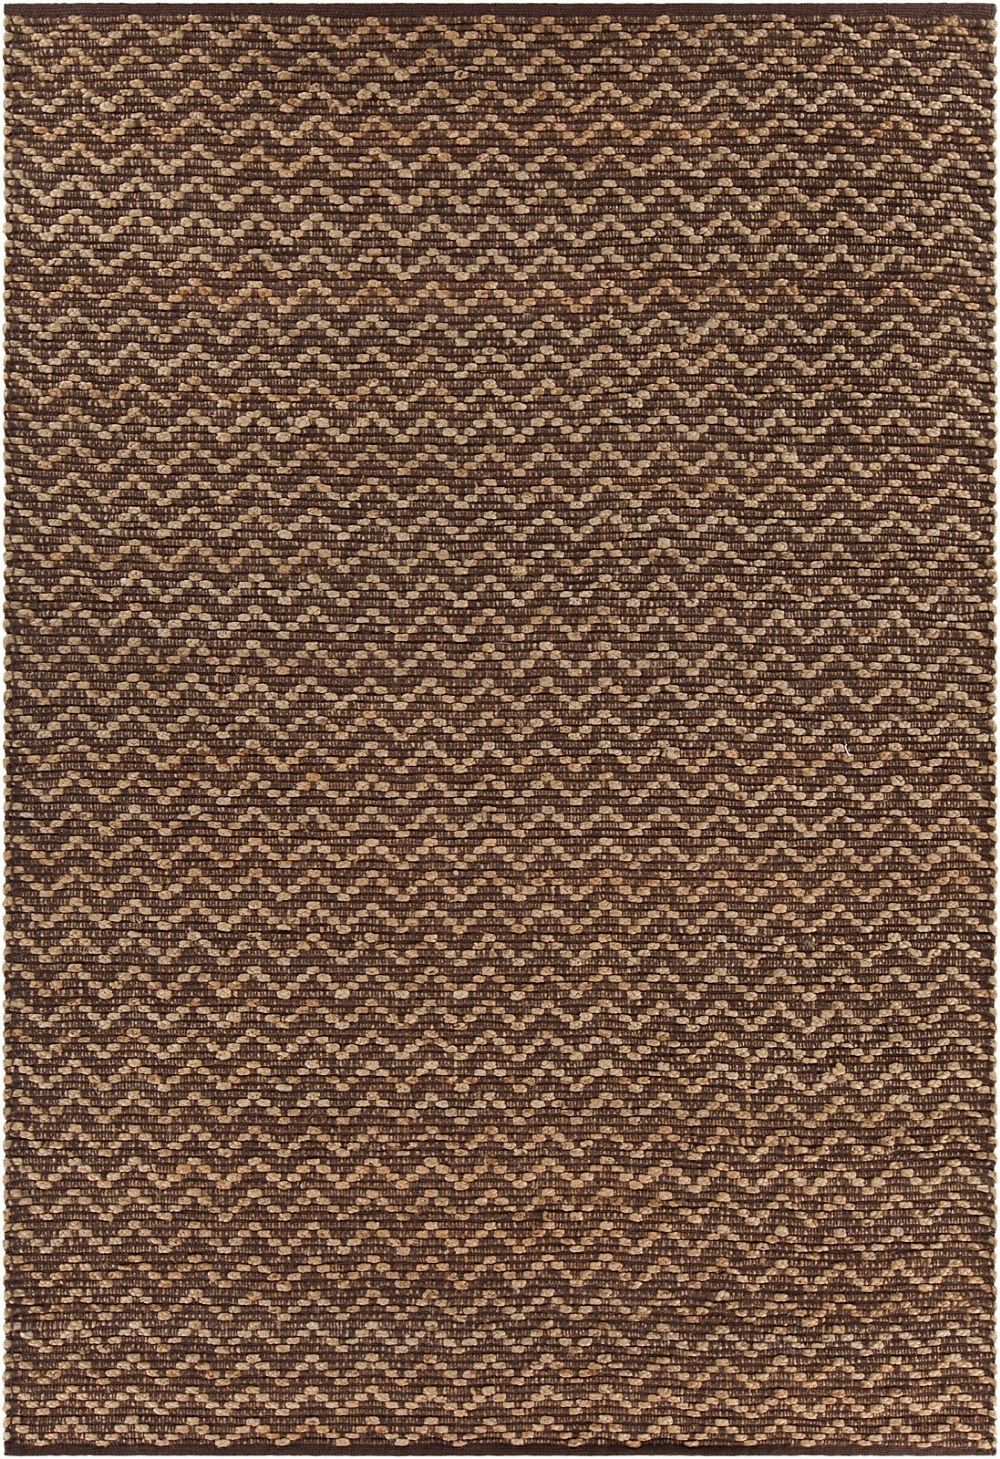 chandra grecco contemporary area rug collection